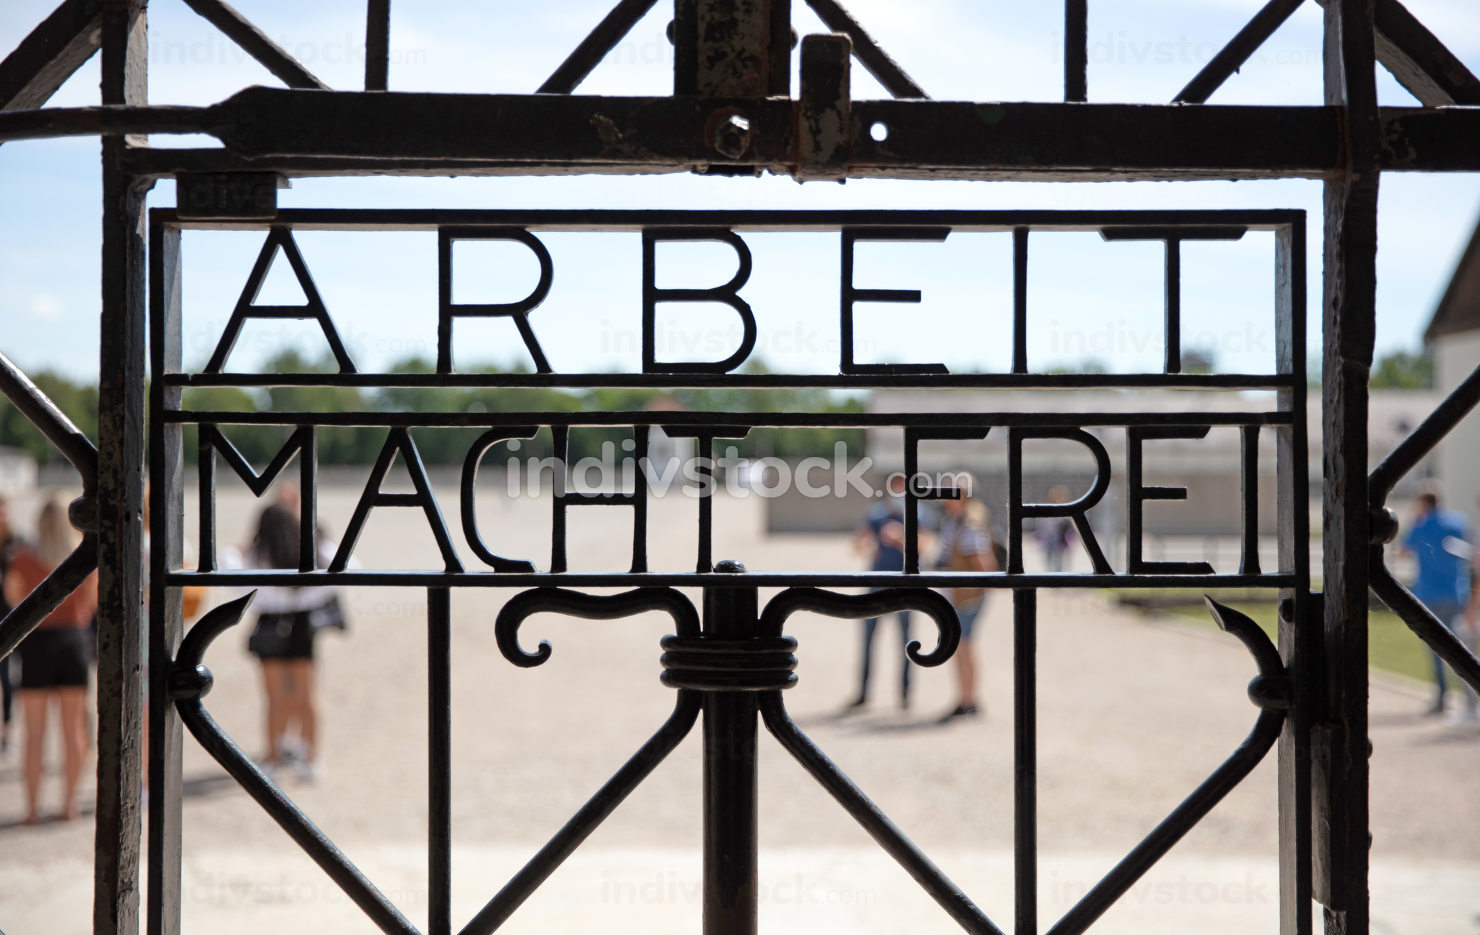 Dachau, Germany on july 13, 2020: Dachau concentration camp entrance gate, the entrance to the first Nazi concentration camp